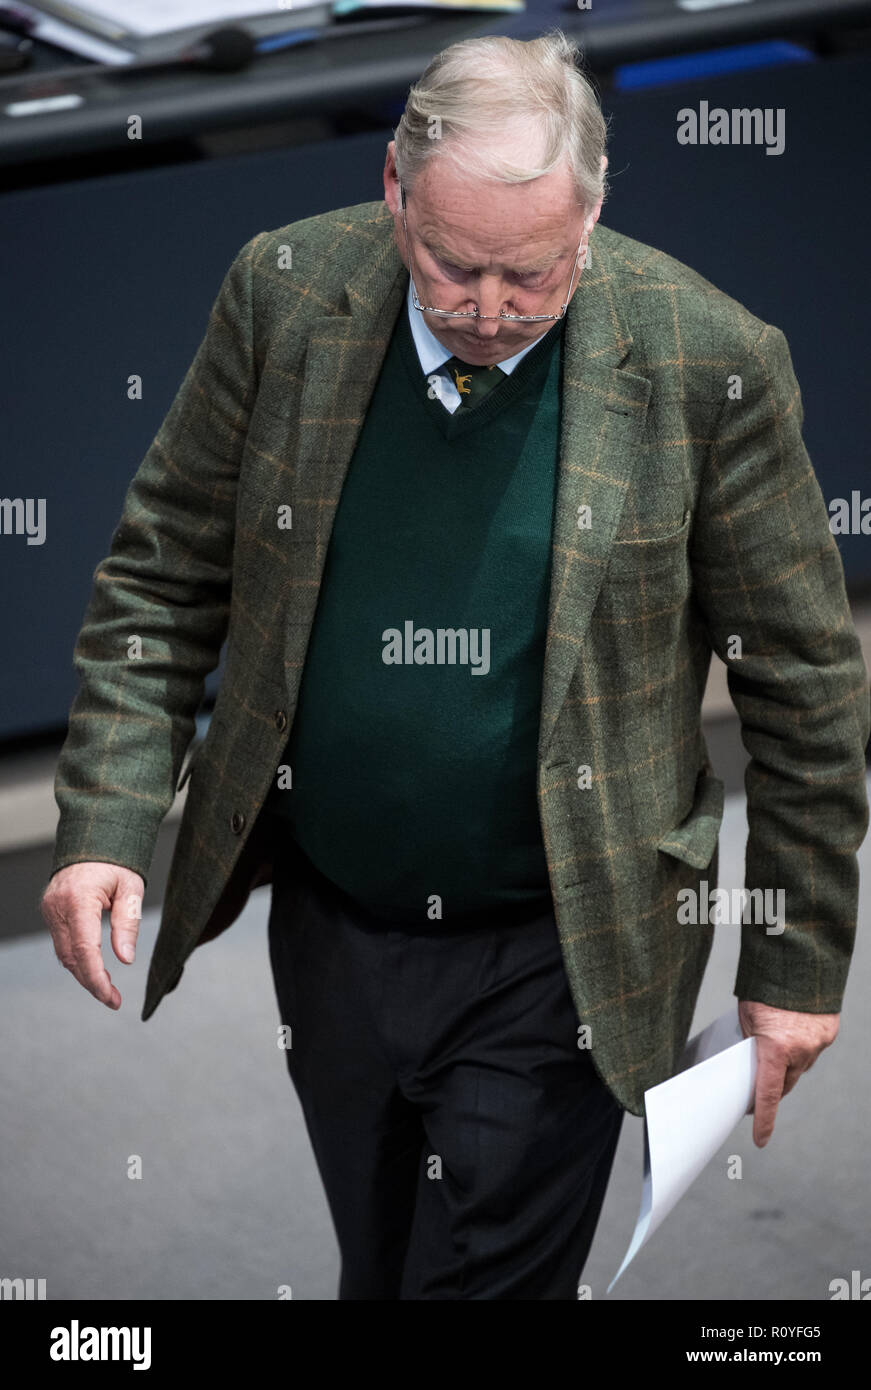 Berlin, Germany. 08th Nov, 2018. Alexander Gauland, chairman of the AfD Bundestag faction, will go to his seat after his speech during the plenary session of the German Bundestag. Topics of the 61st session of the 19th legislative period include the pension package introduced by the Federal Government, additional safe countries of origin, tax relief for families, changes in asylum law, accelerated traffic planning and a current hour on the INF (Intermediate Range Nuclear Forces) nuclear disarmament treaty. Credit: Bernd von Jutrczenka/dpa/Alamy Live News Credit: Bernd von Jutrczenka/dpa/Alamy  - Stock Image